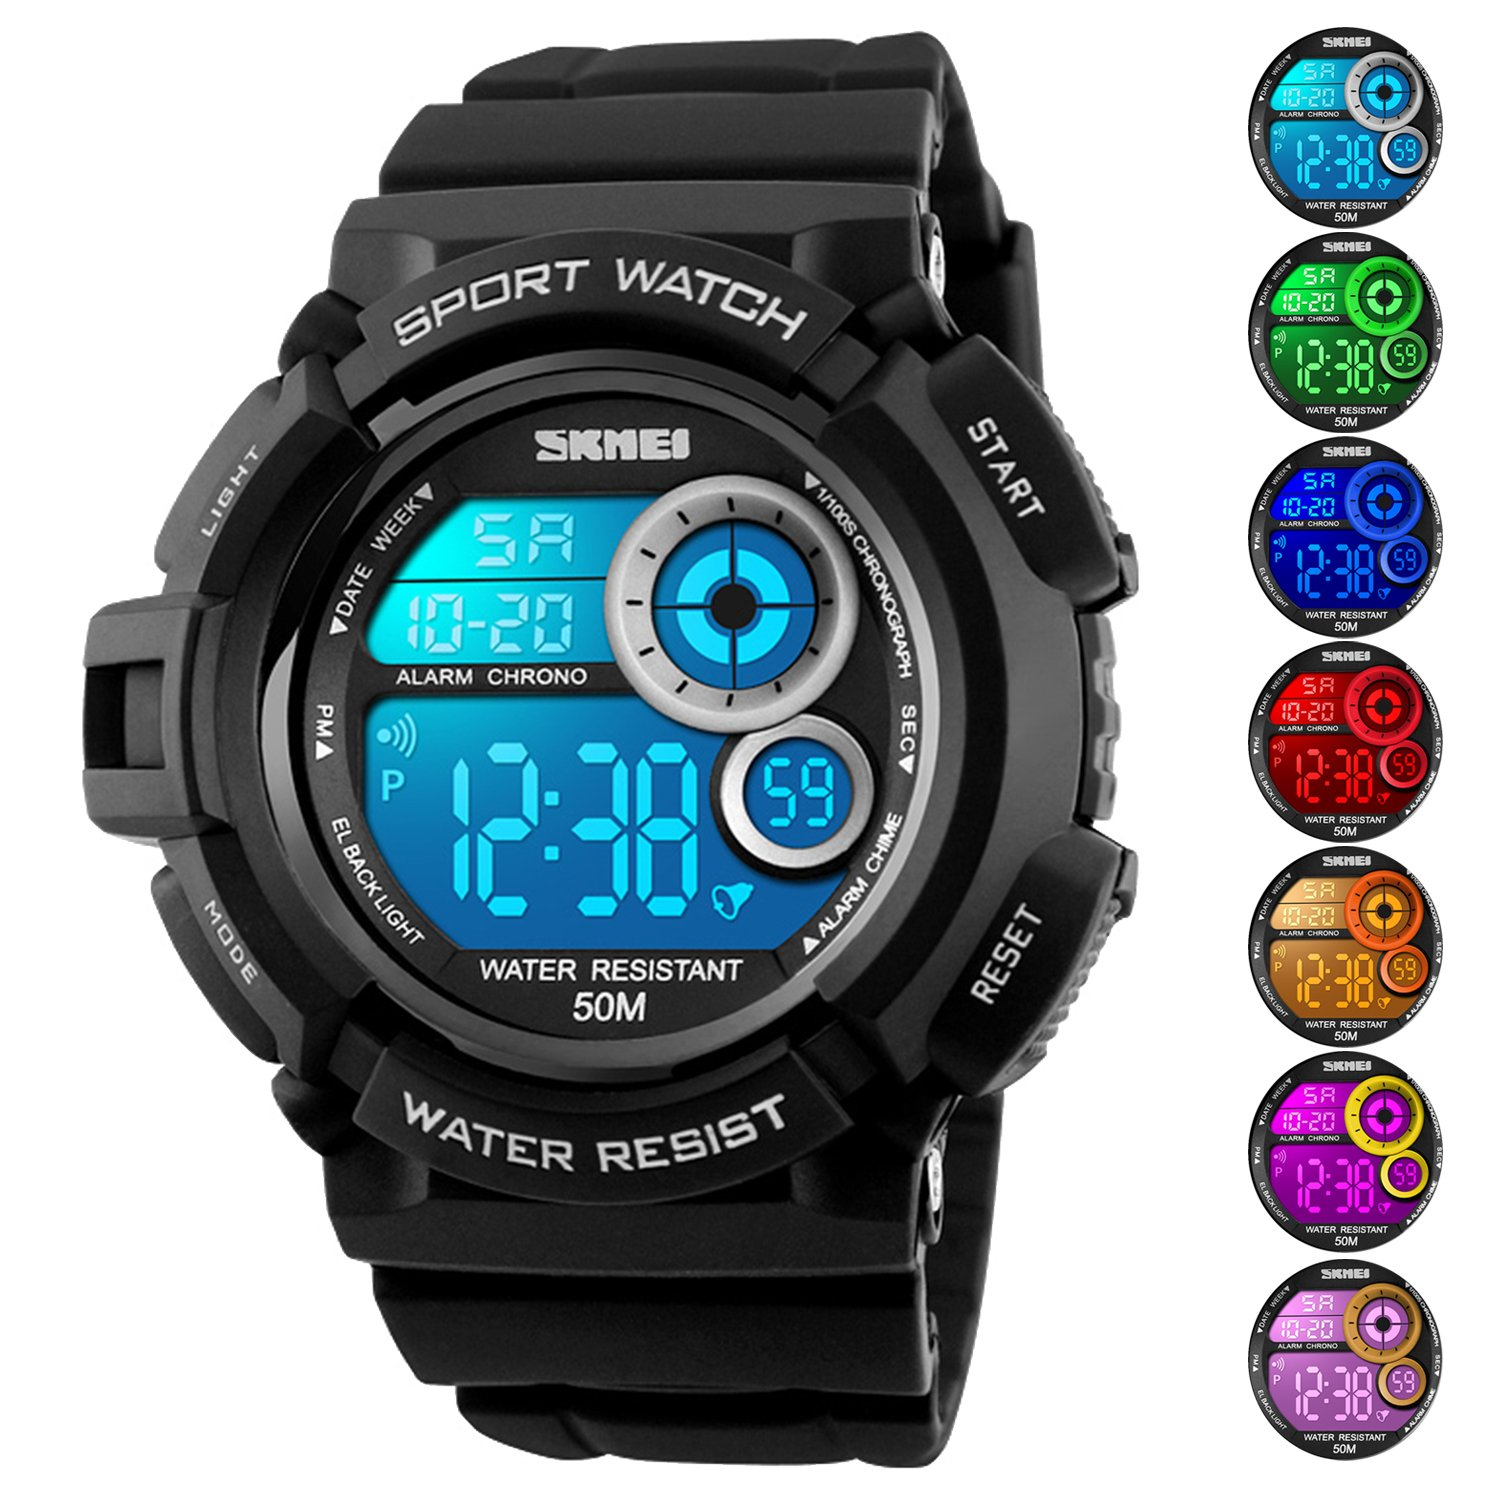 Men's Digital Sports Watch LED Screen Large Face Military Watches and Waterproof Casual Luminous Stopwatch Alarm Simple Army Watch Black